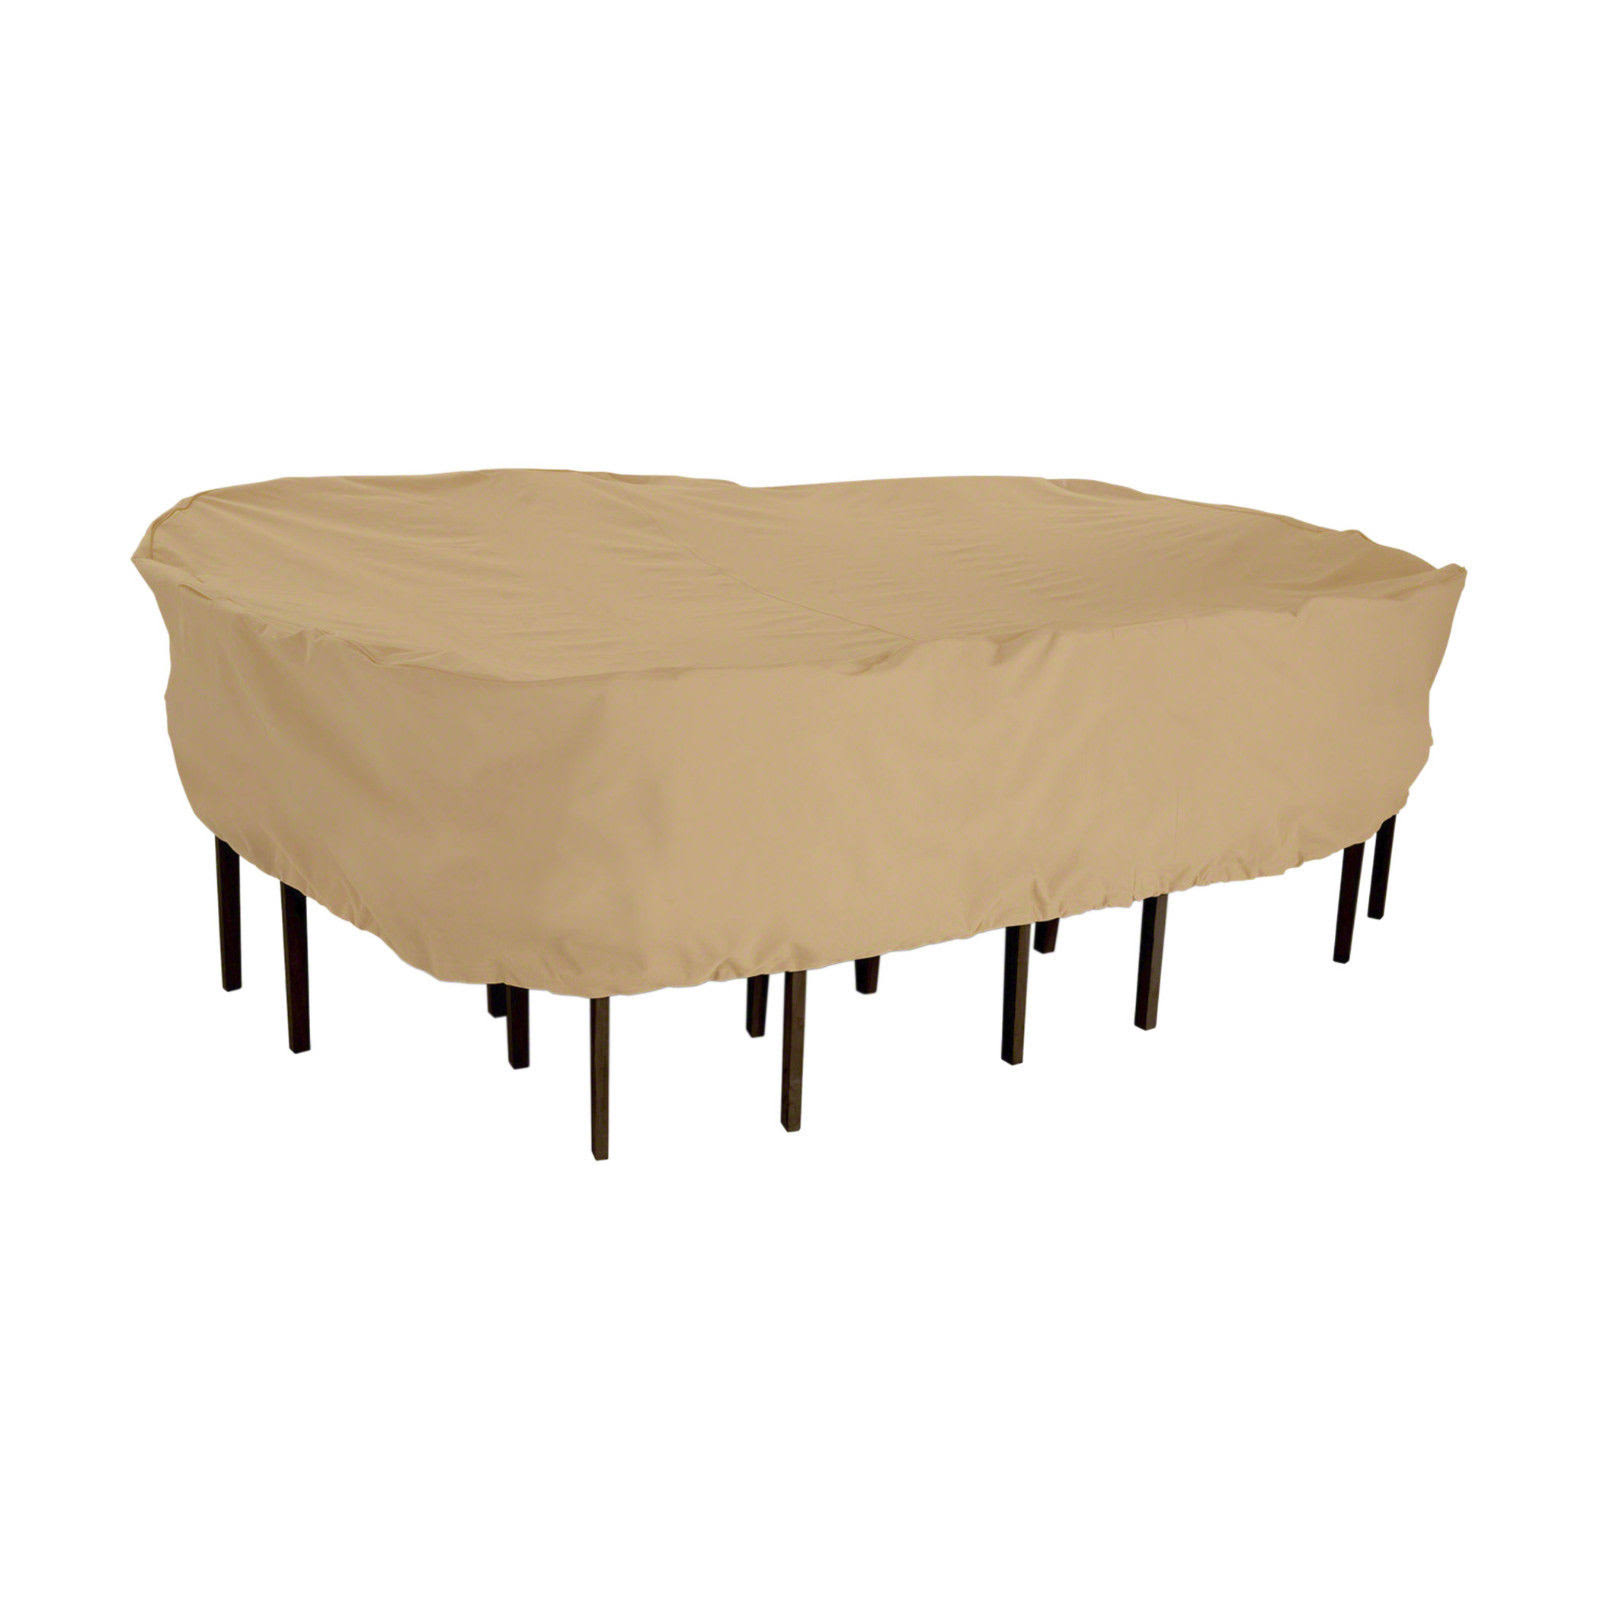 "Classic Accessories Furniture Storage Cover - 108""x82"", Tan"